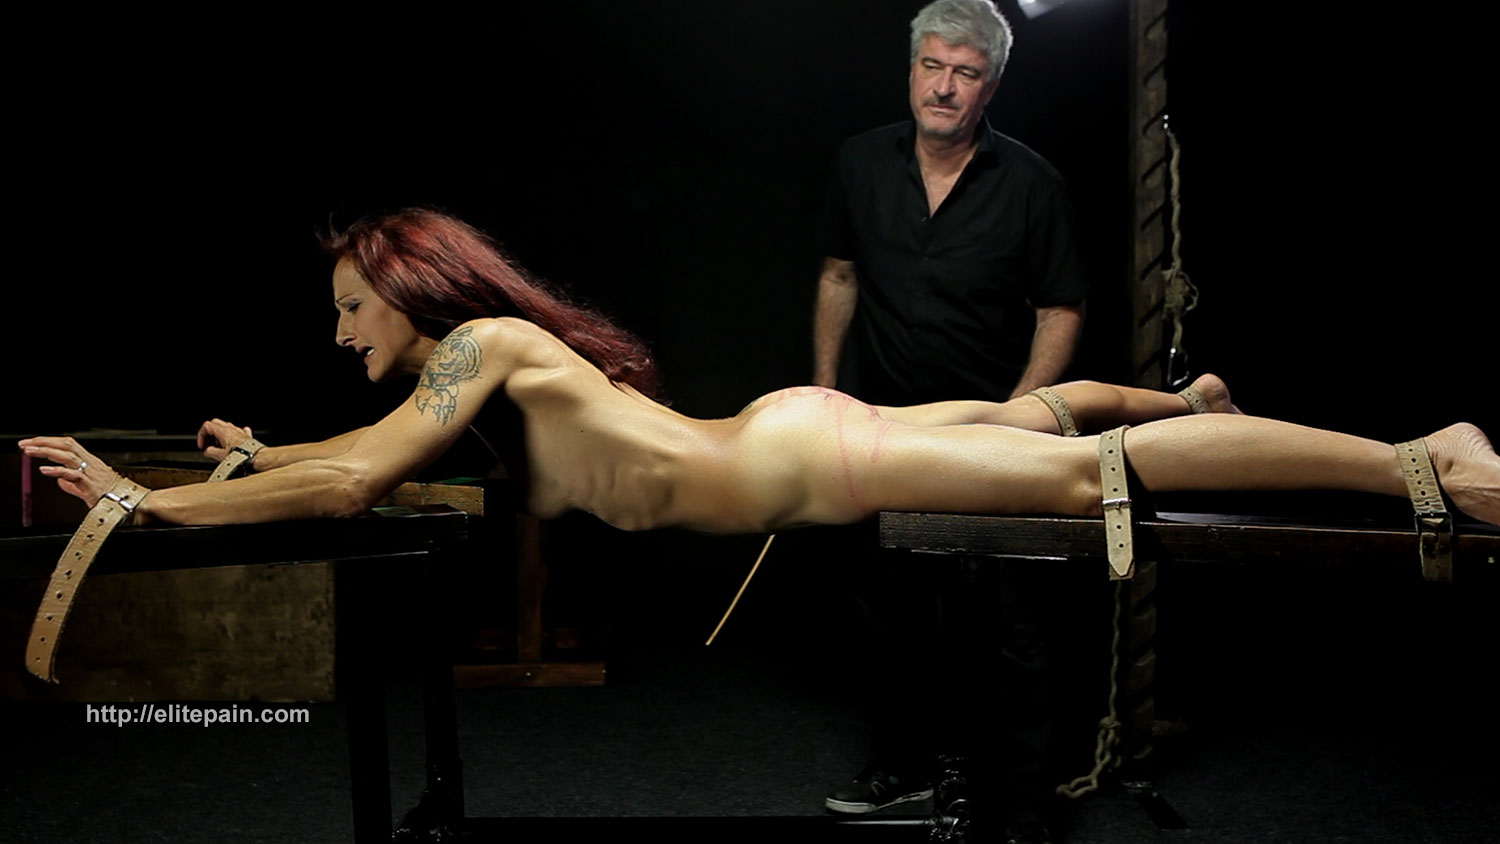 Free Full Bdsm Movies 83